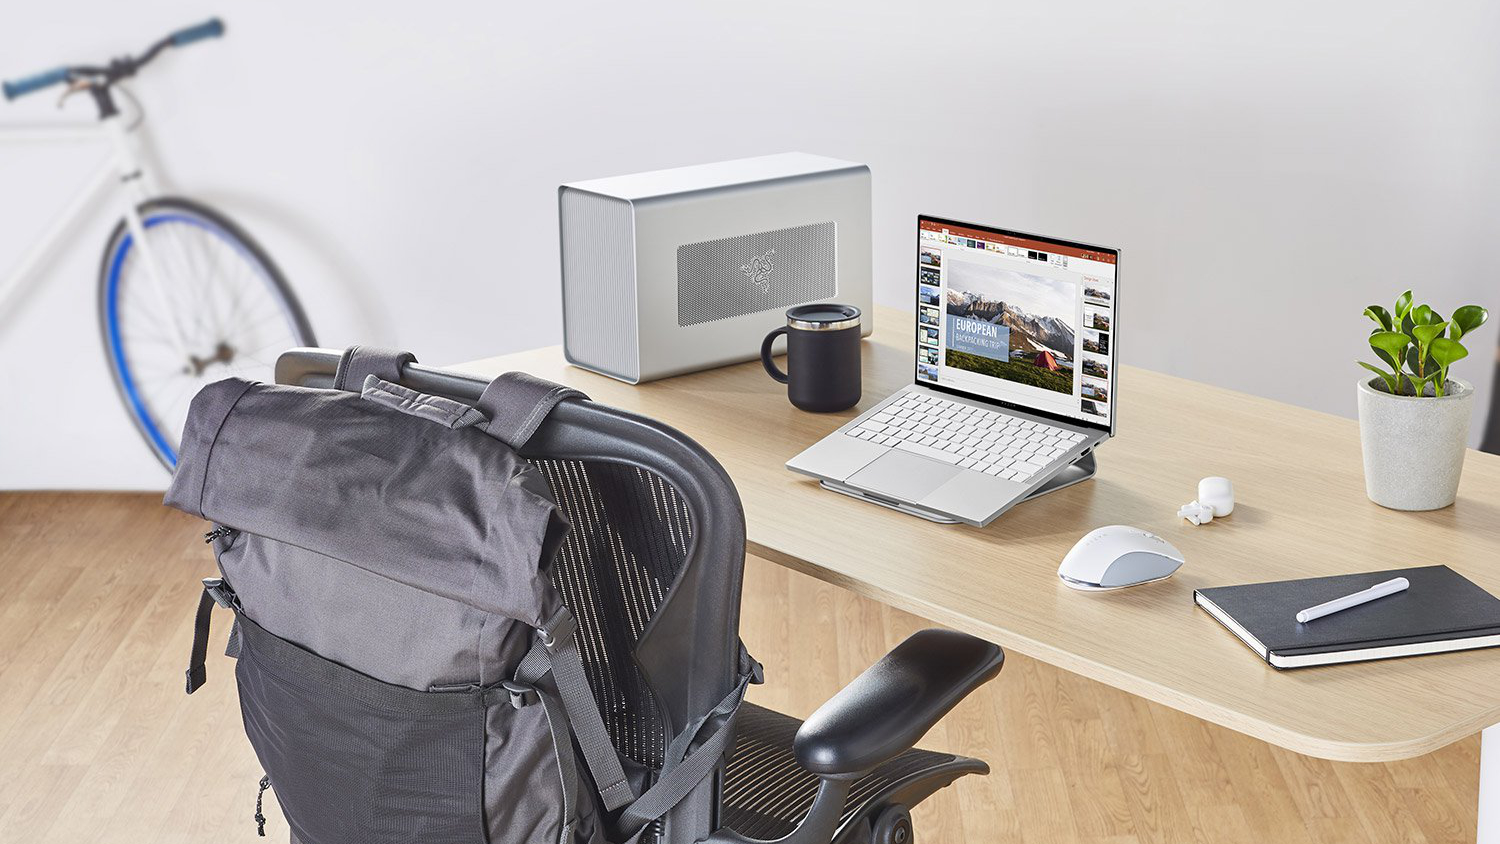 Gaming computer on desk